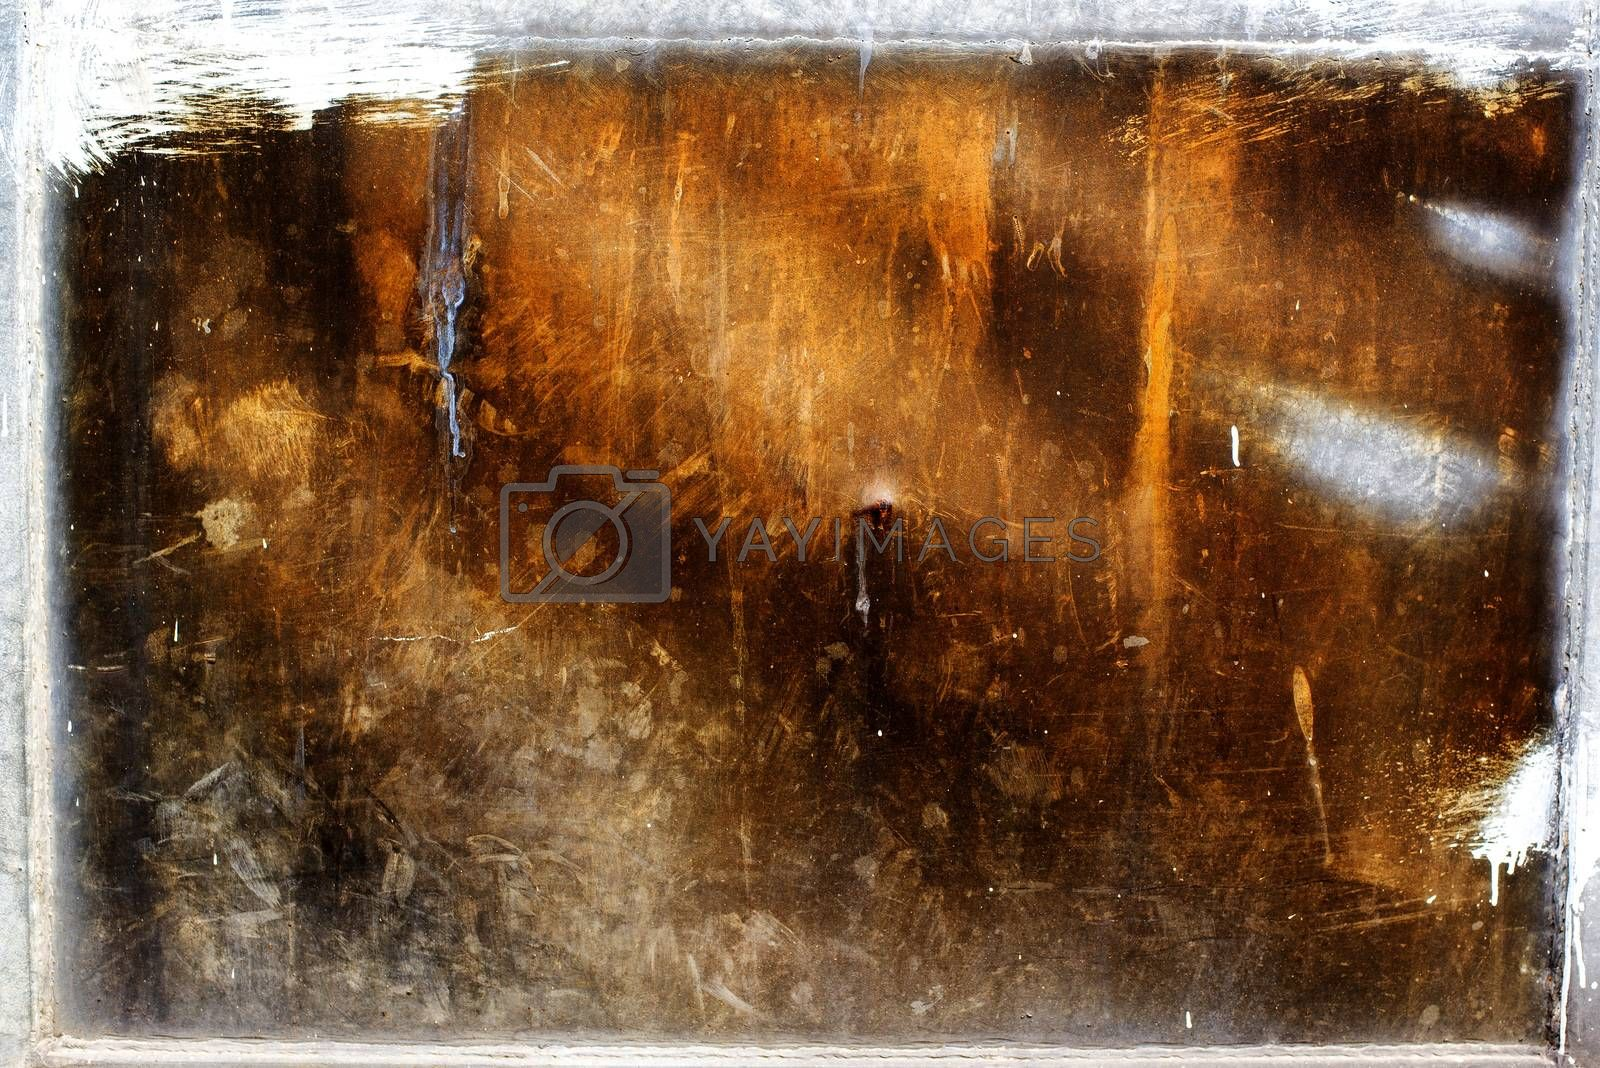 Corroded metal texture as background